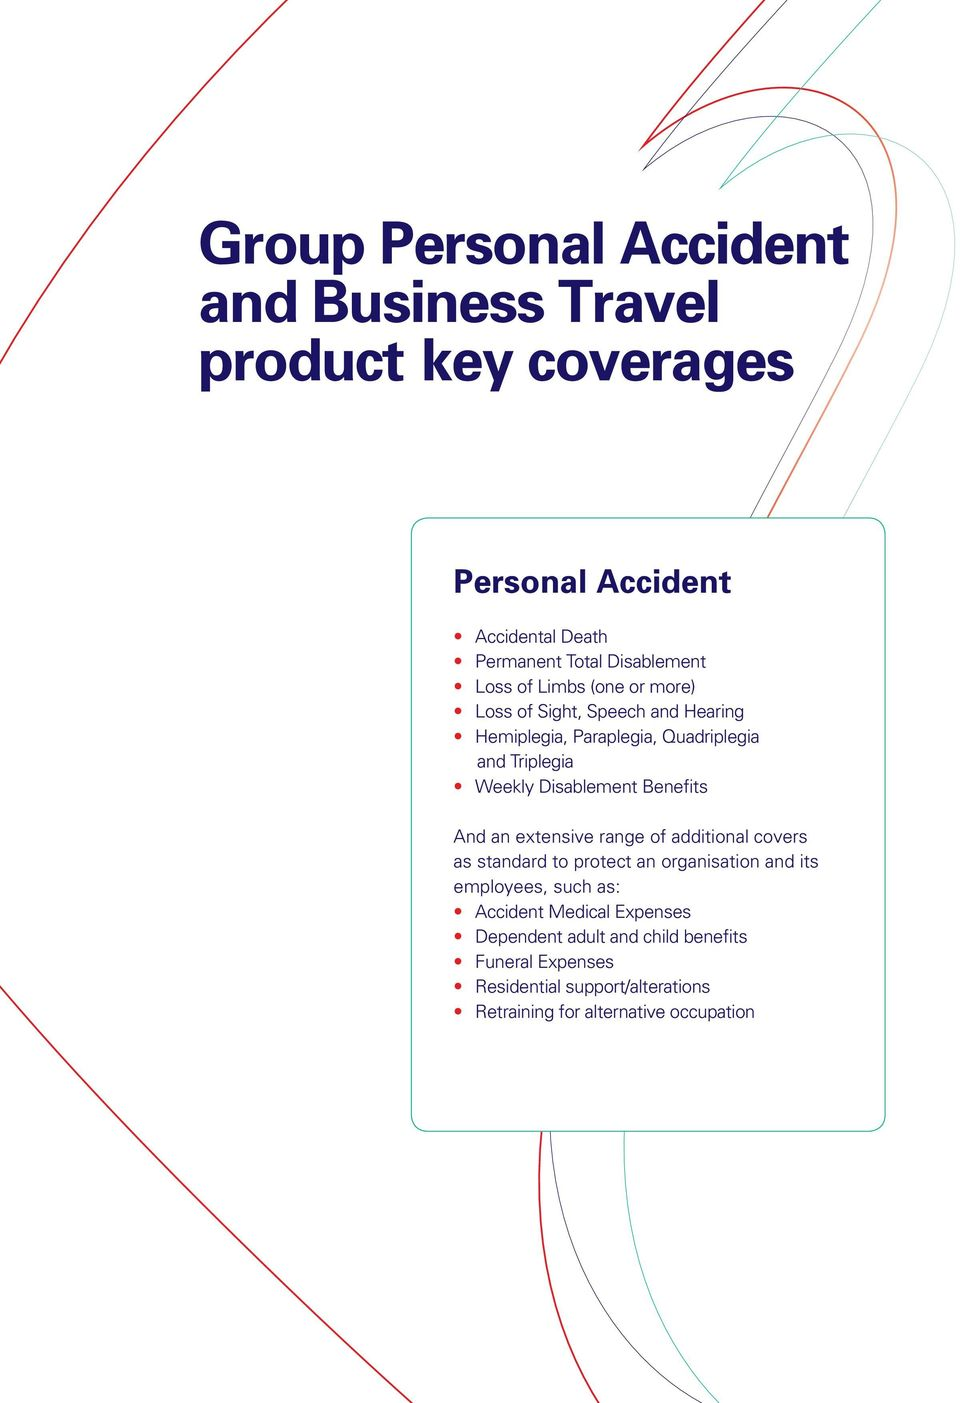 Benefits And an extensive range of additional covers as standard to protect an organisation and its employees, such as: Accident